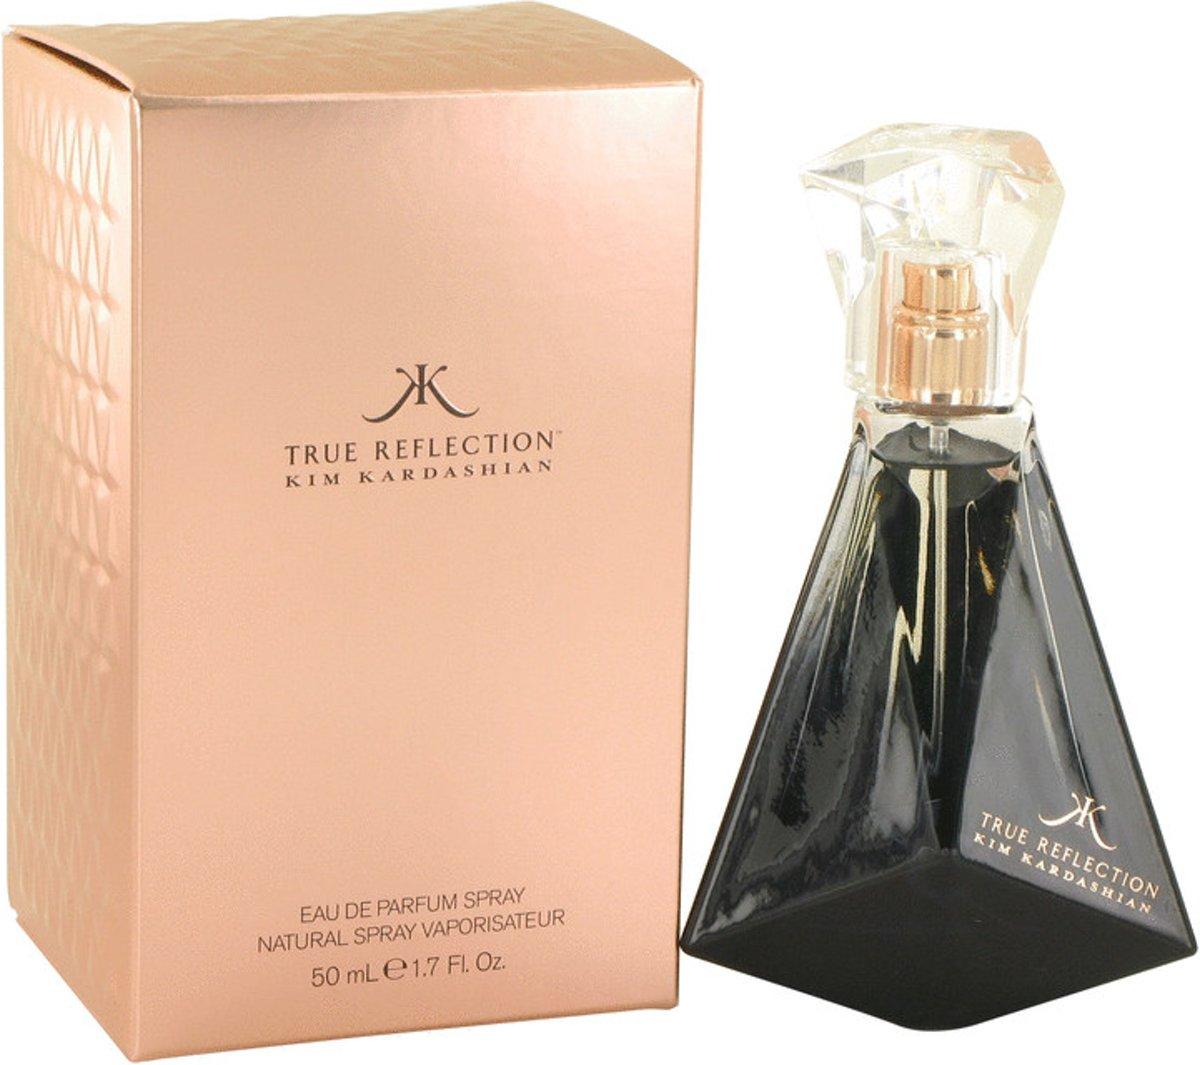 Kim Kardashian True Reflection Eau de Parfum 30ml Spray